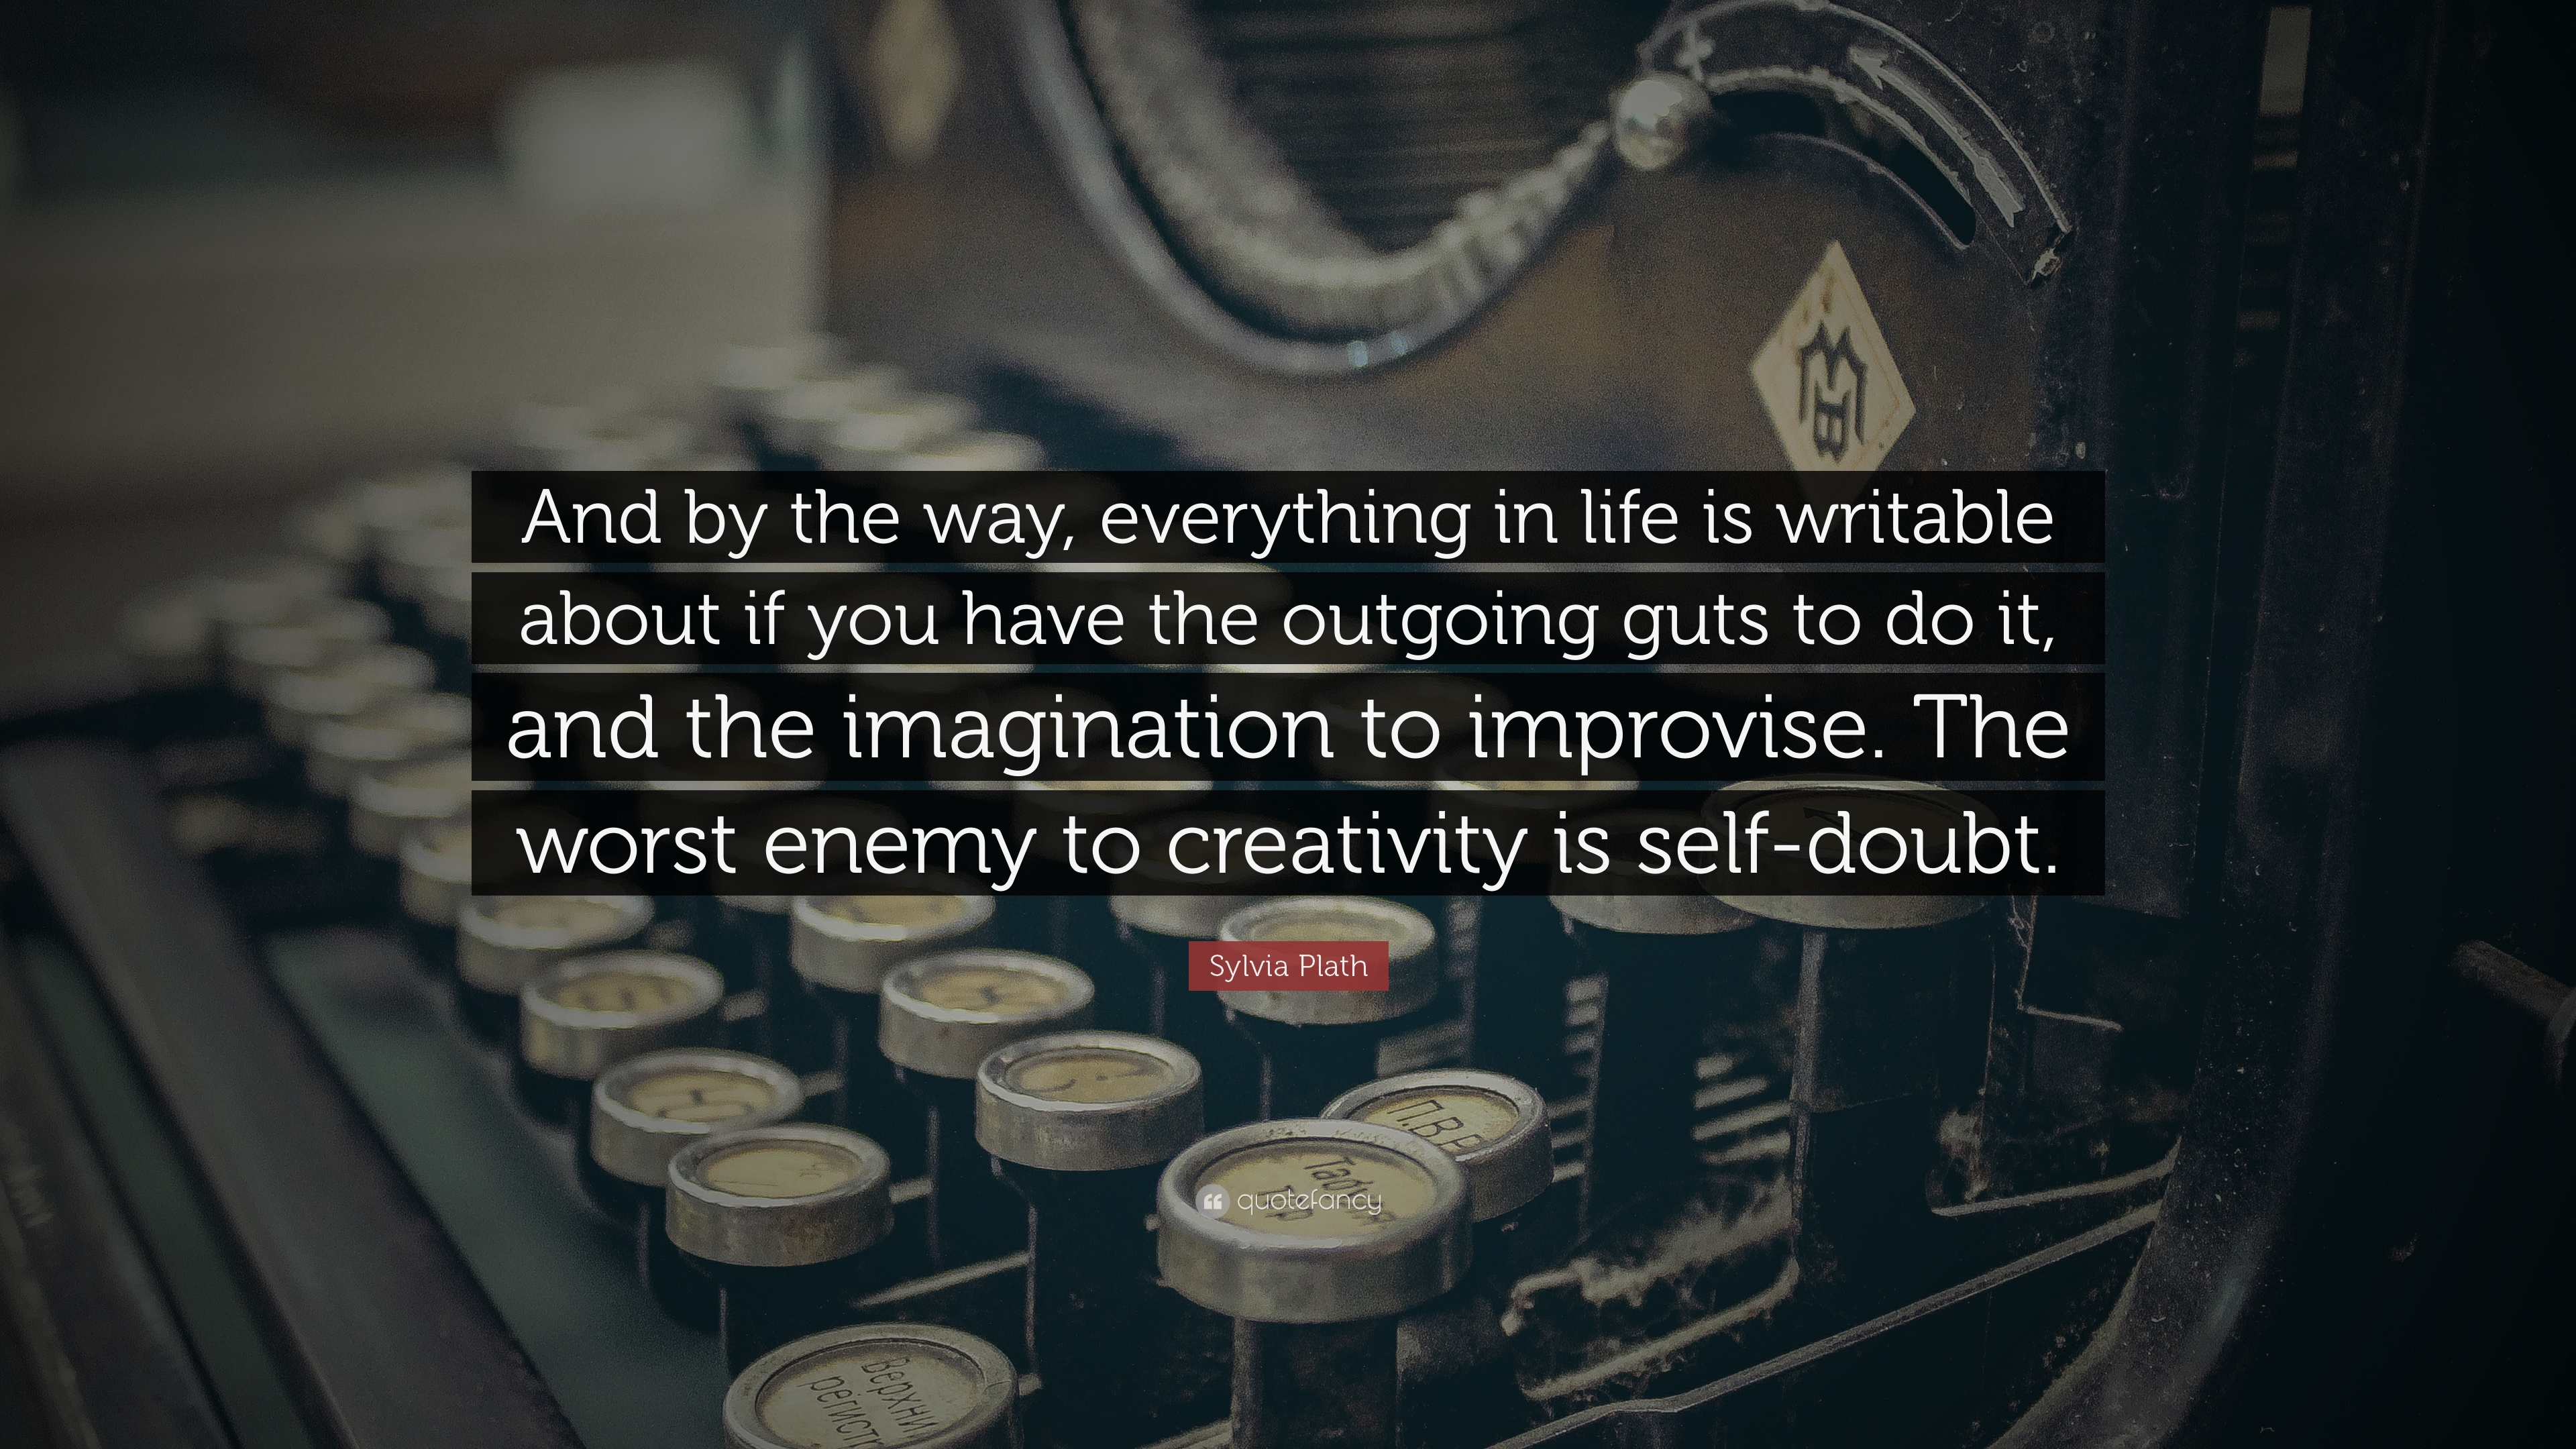 sylvia plaths mourning and creativity essay Sylvia plath's mourning and creativity essay - sylvia plath's mourning and  creativity abstract in this article, i concentrate on the connection between  mourning.